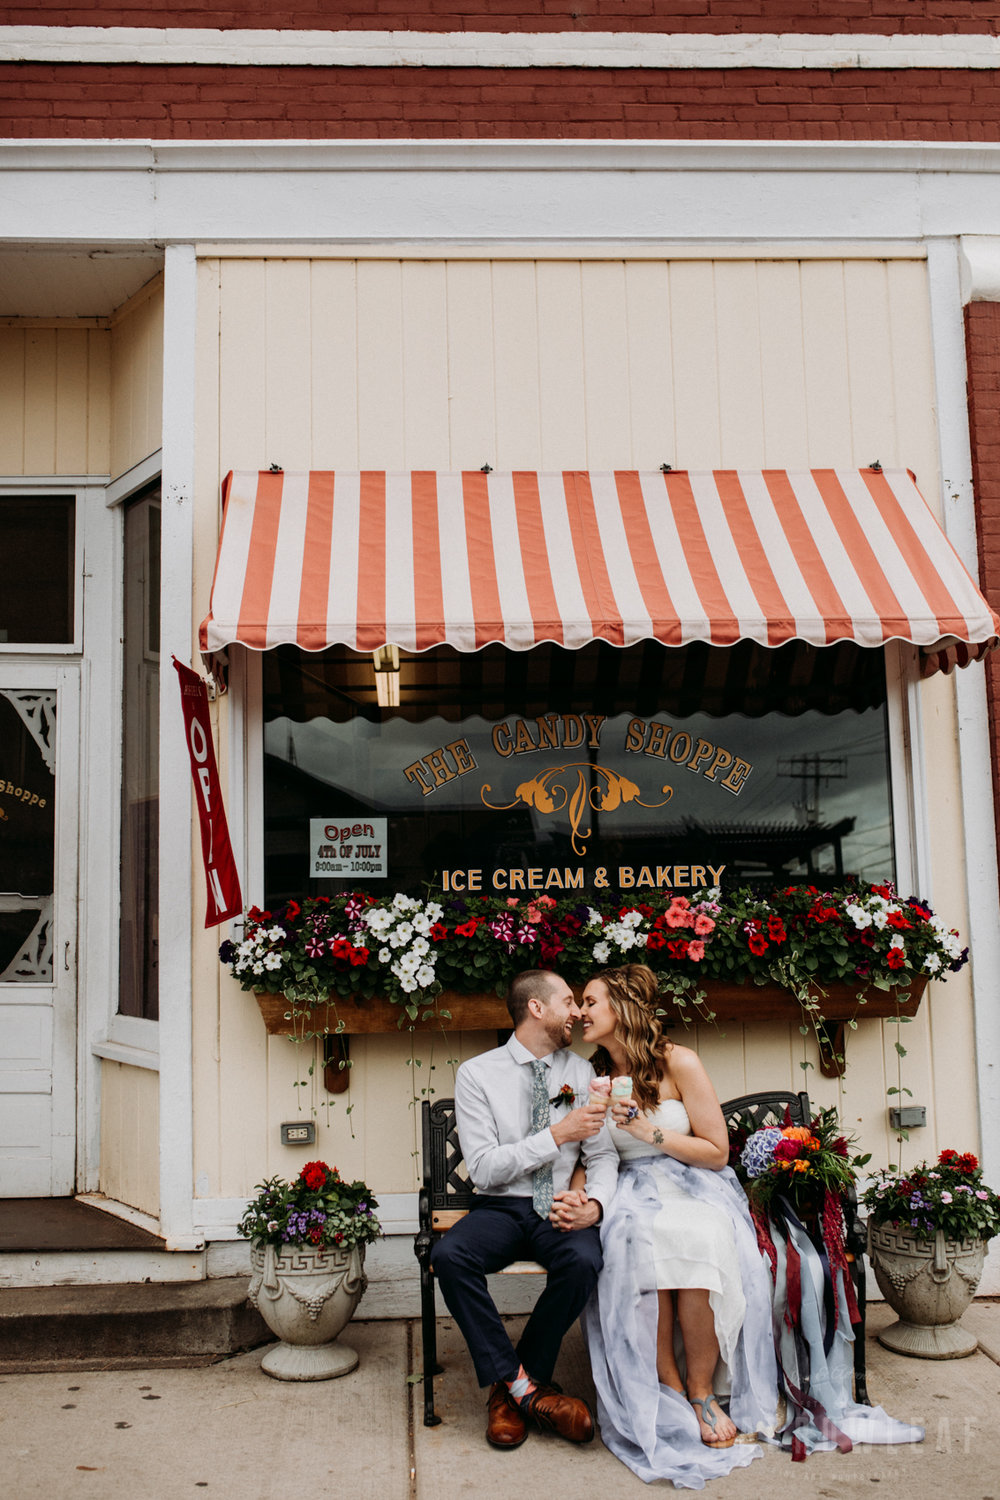 the-candy-shoppe-in-bayfield-wi-bride-groom-stop-for-ice-cream-302.jpg